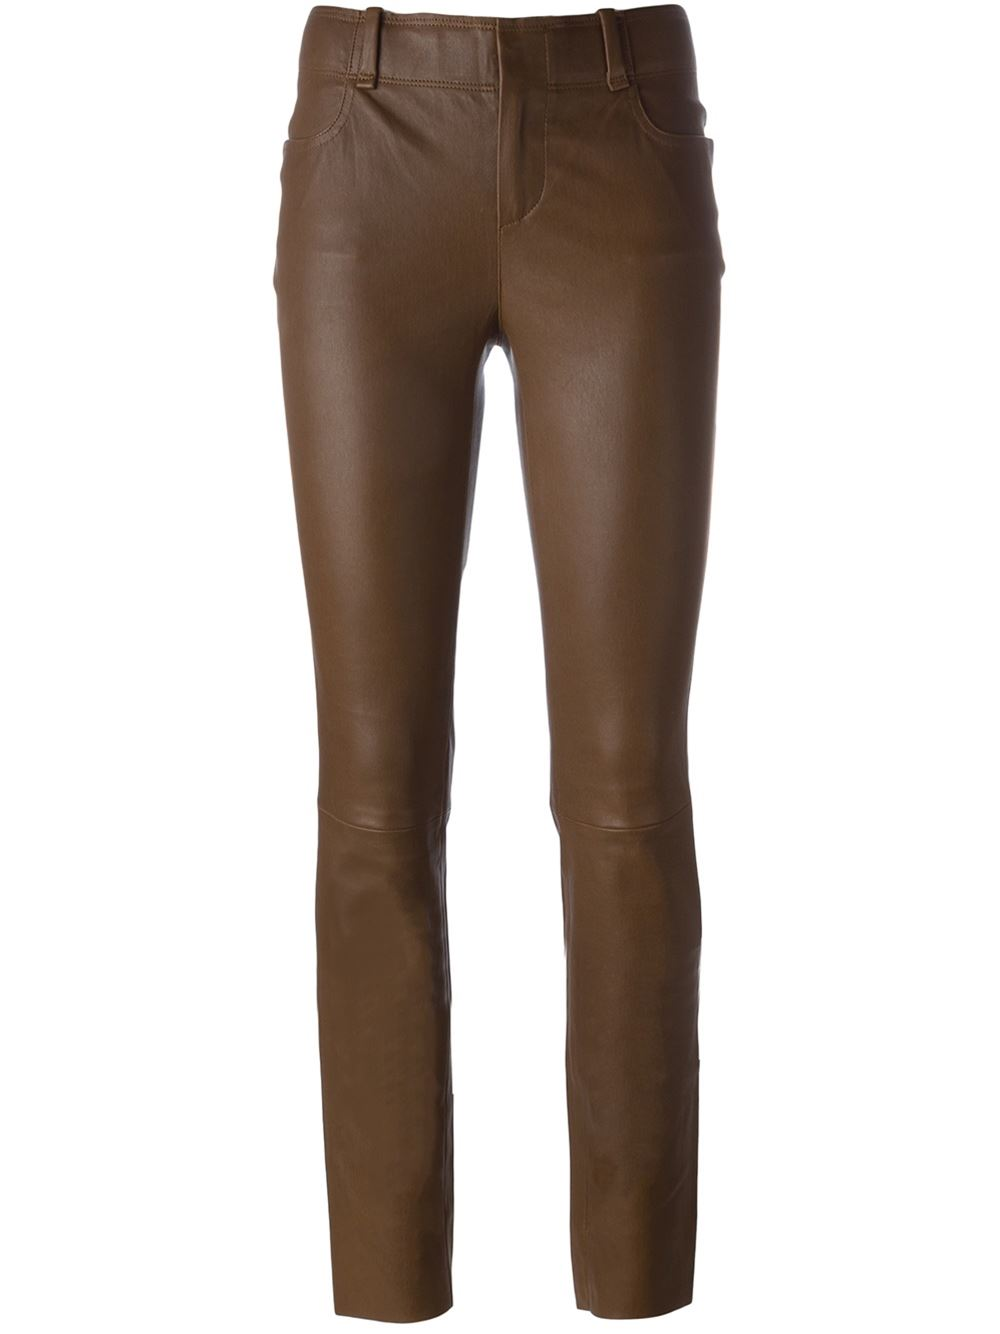 Brown skinny leather trousers from Stouls